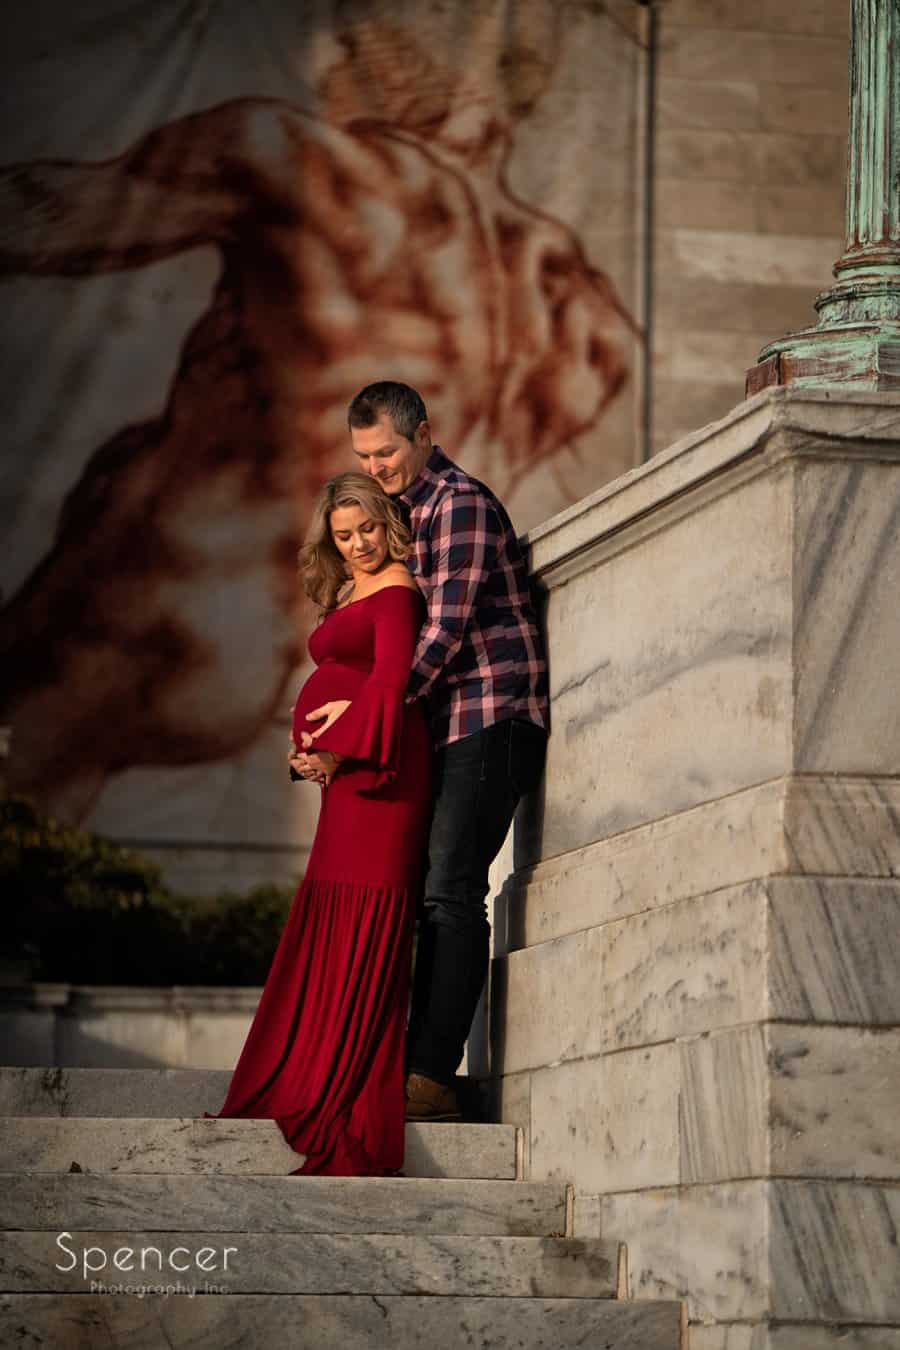 soon to be parents in maternity pictures at Cleveland Museum of Art